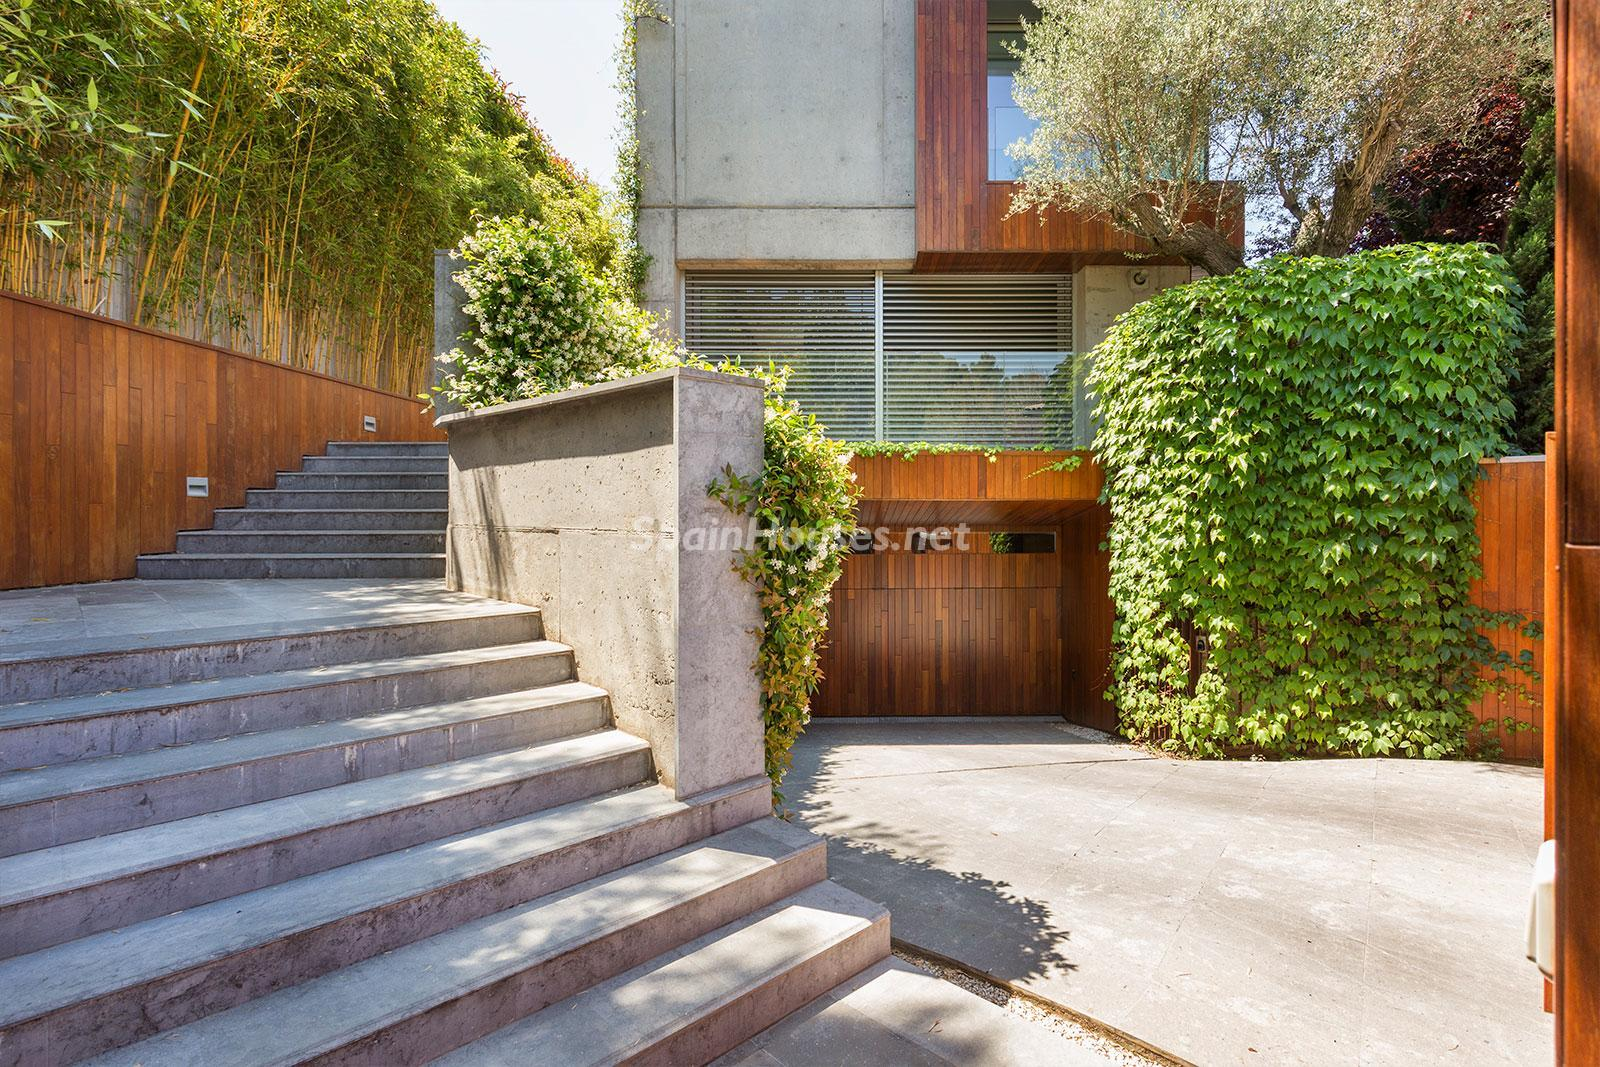 22. House for sale in Barcelona city - Superb 5 bed home in Barcelona features 2 swimming pools and a huge garden